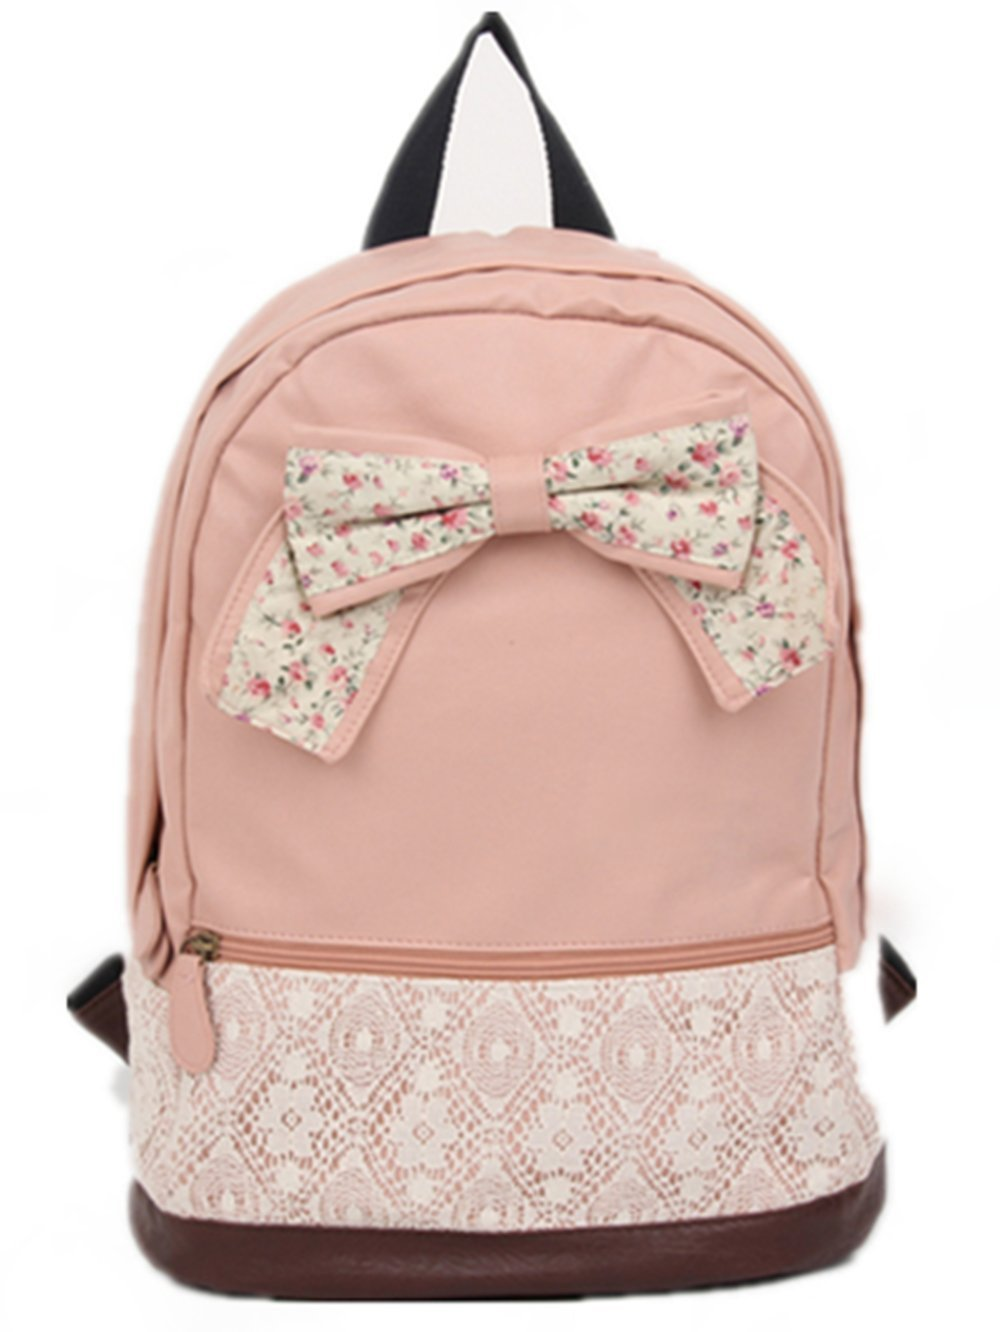 Cute Backpacks For Teens bGoLoPd4